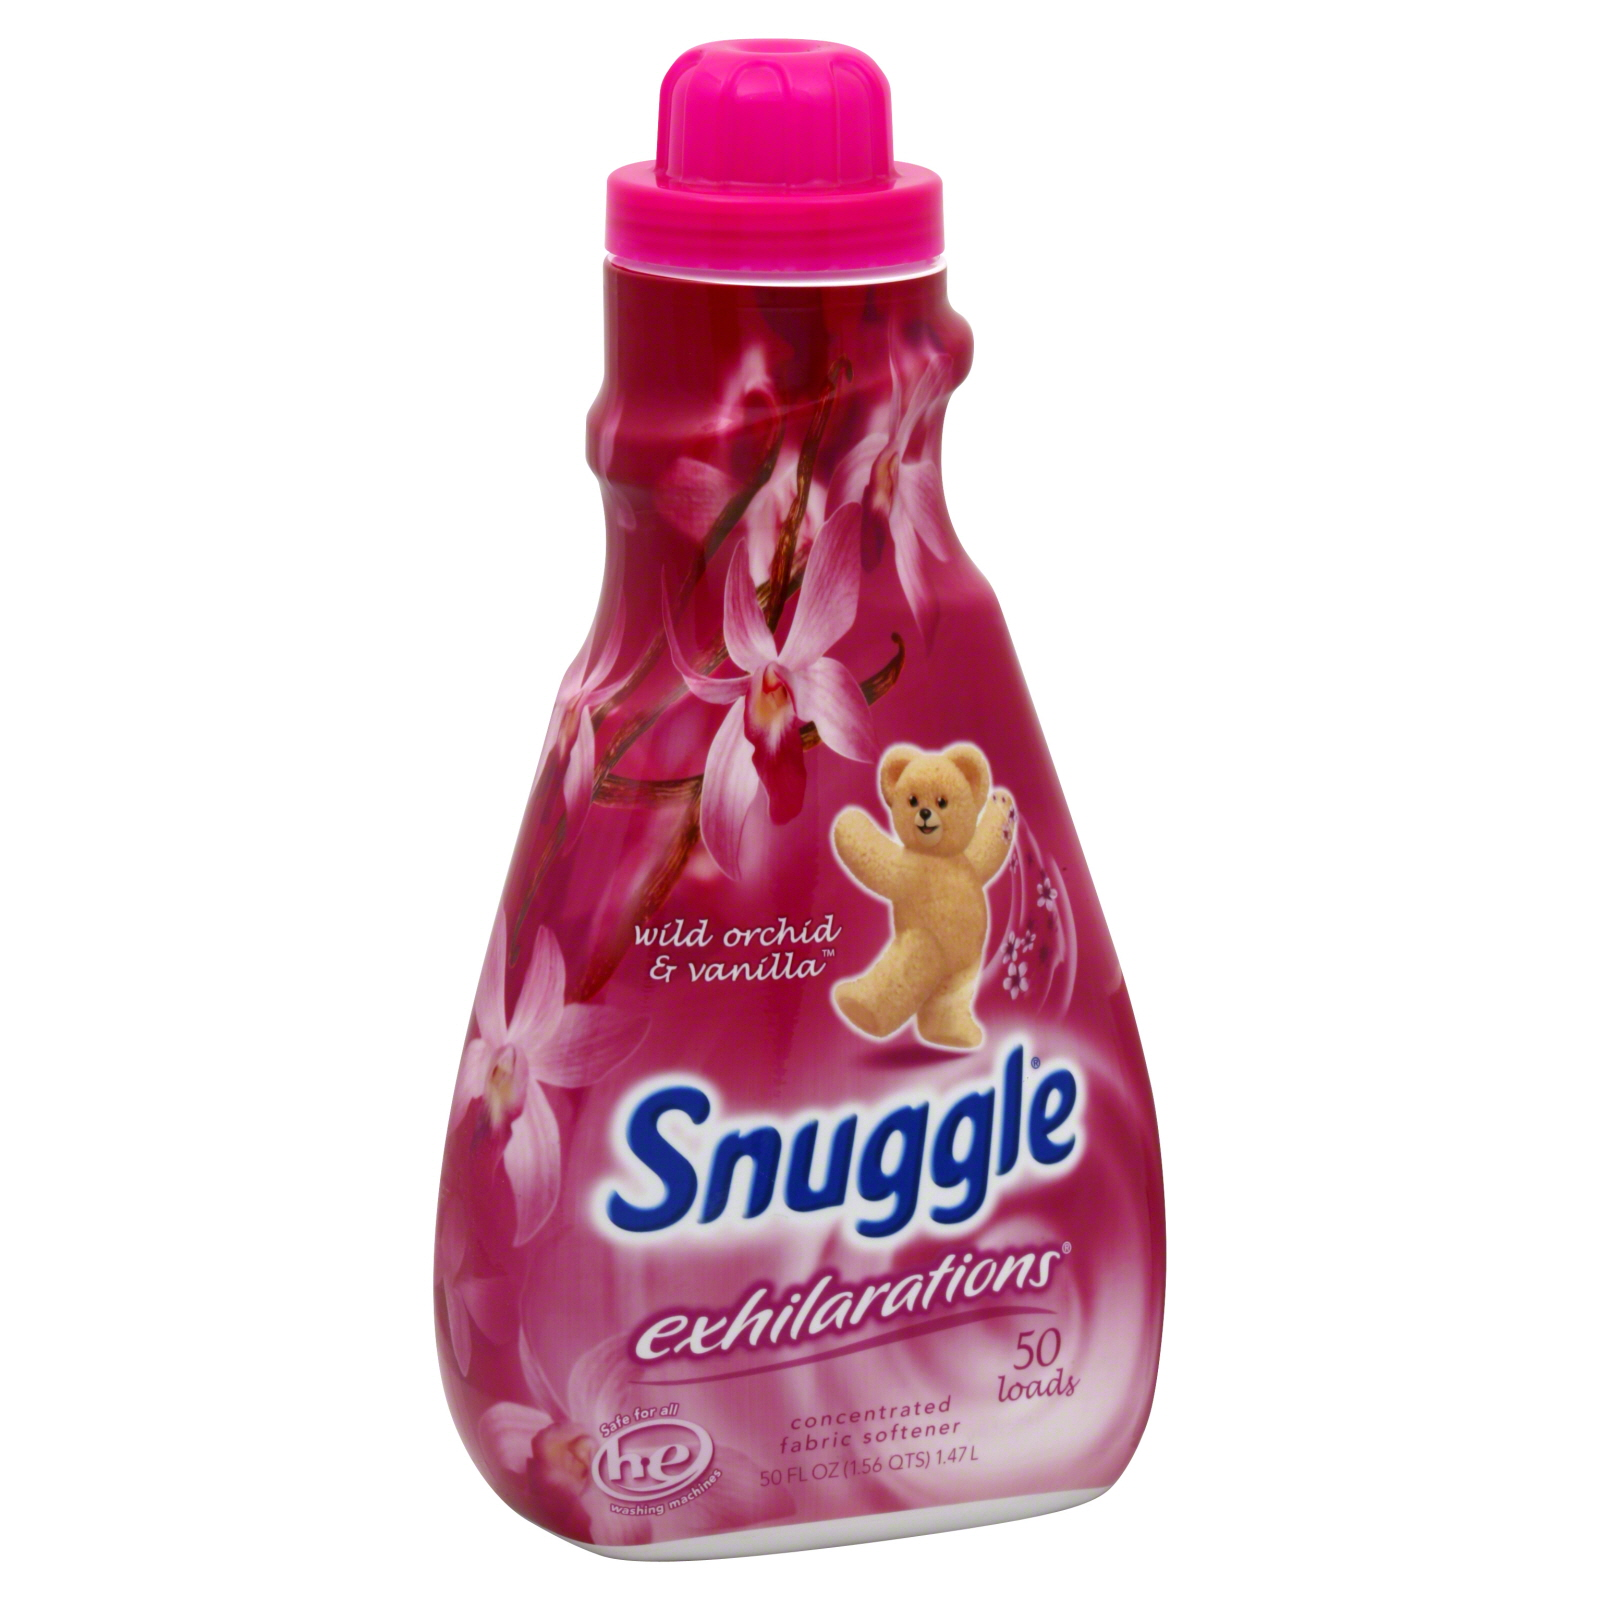 Snuggle  Exhilarations Fabric Softener,